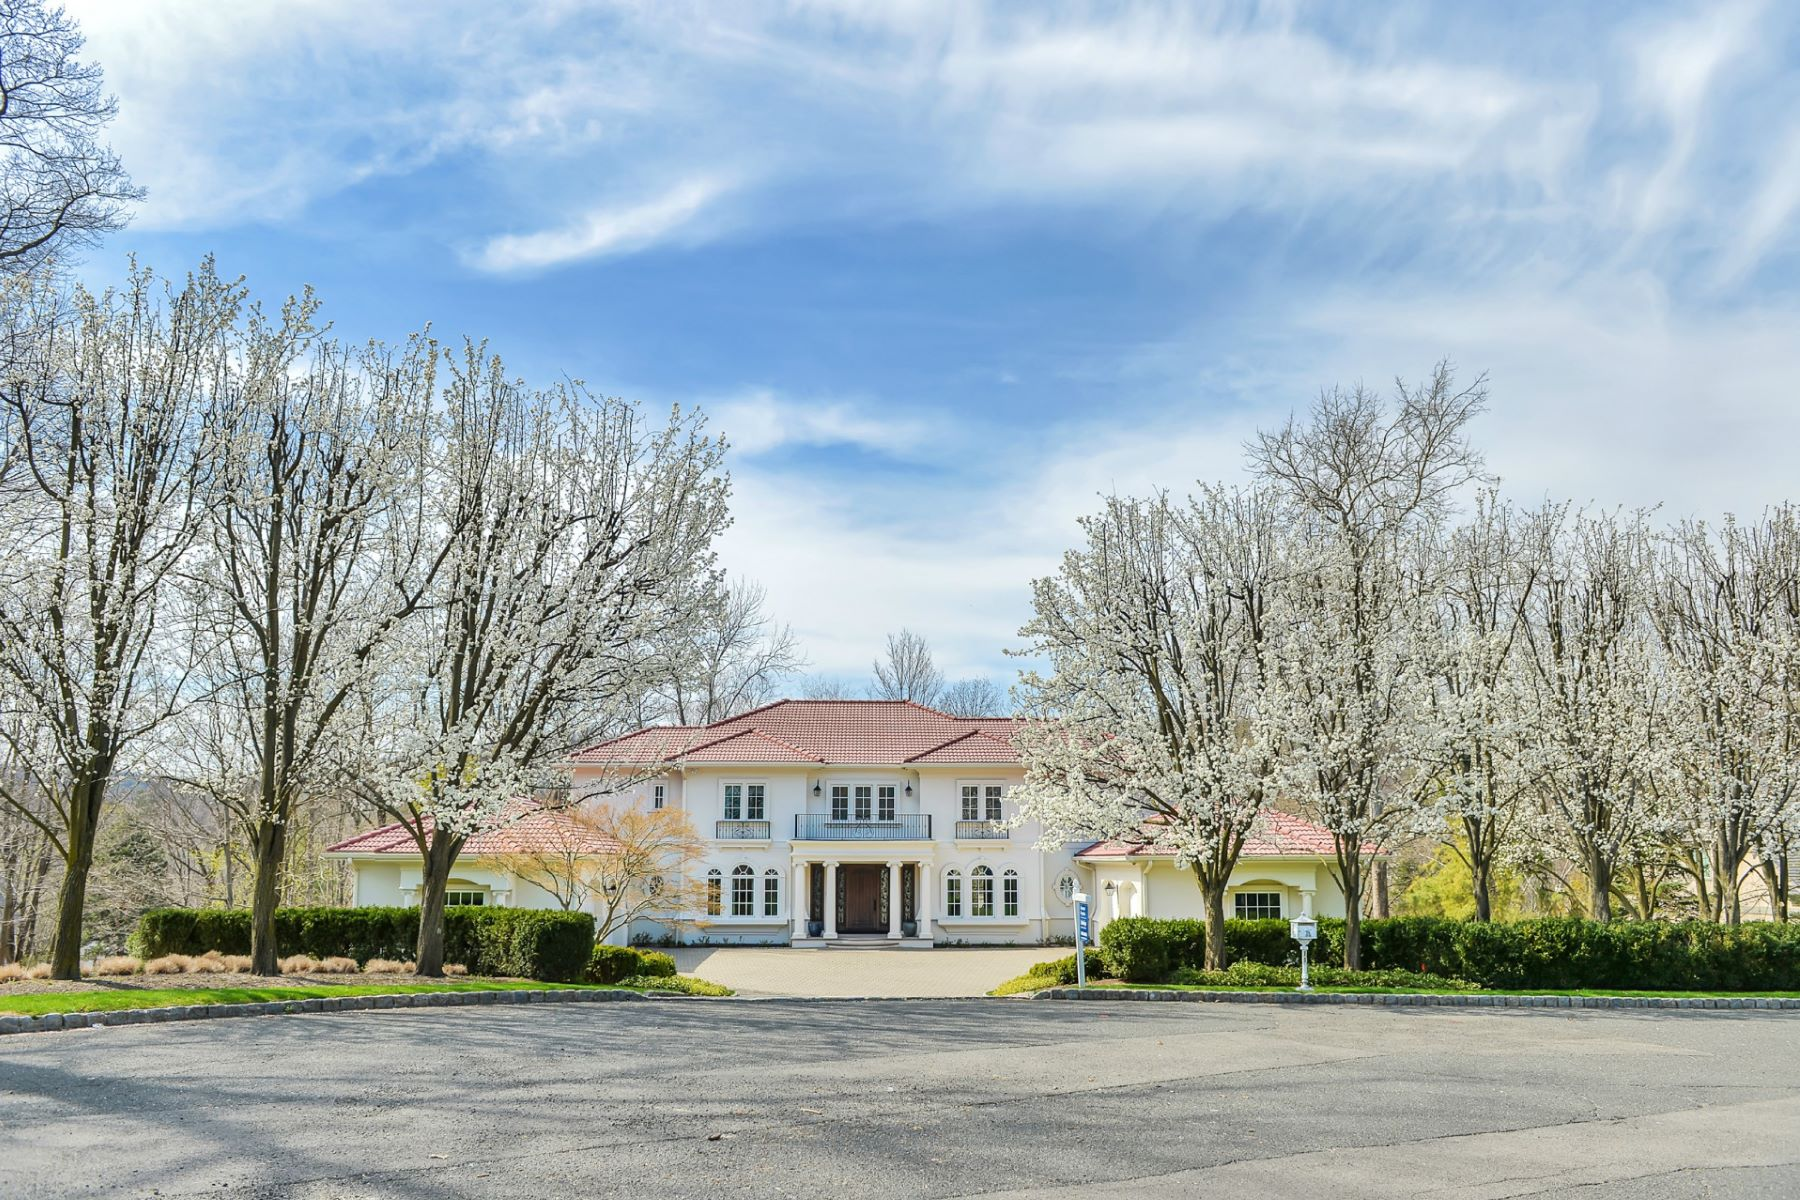 Single Family Home for Sale at Magnificent Burnheade Estate 110 Gallowae Watchung, New Jersey 07069 United States